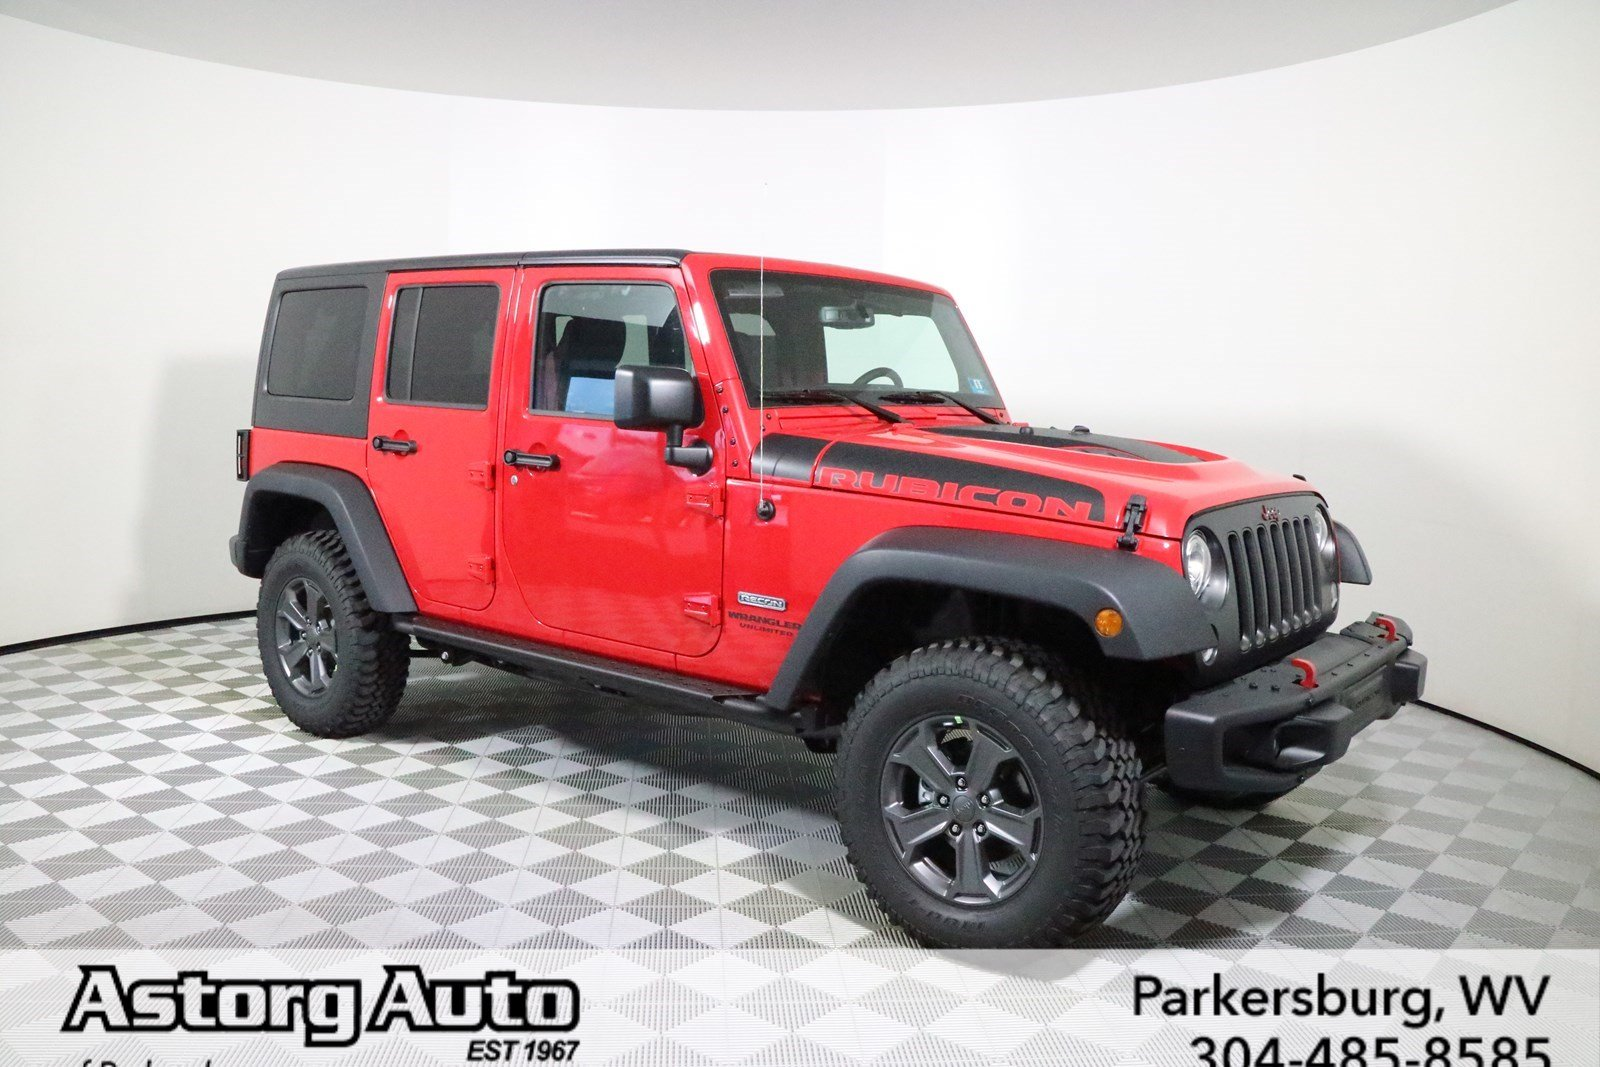 new 2017 jeep wrangler unlimited rubicon recon convertible in parkersburg d6763 astorg auto. Black Bedroom Furniture Sets. Home Design Ideas